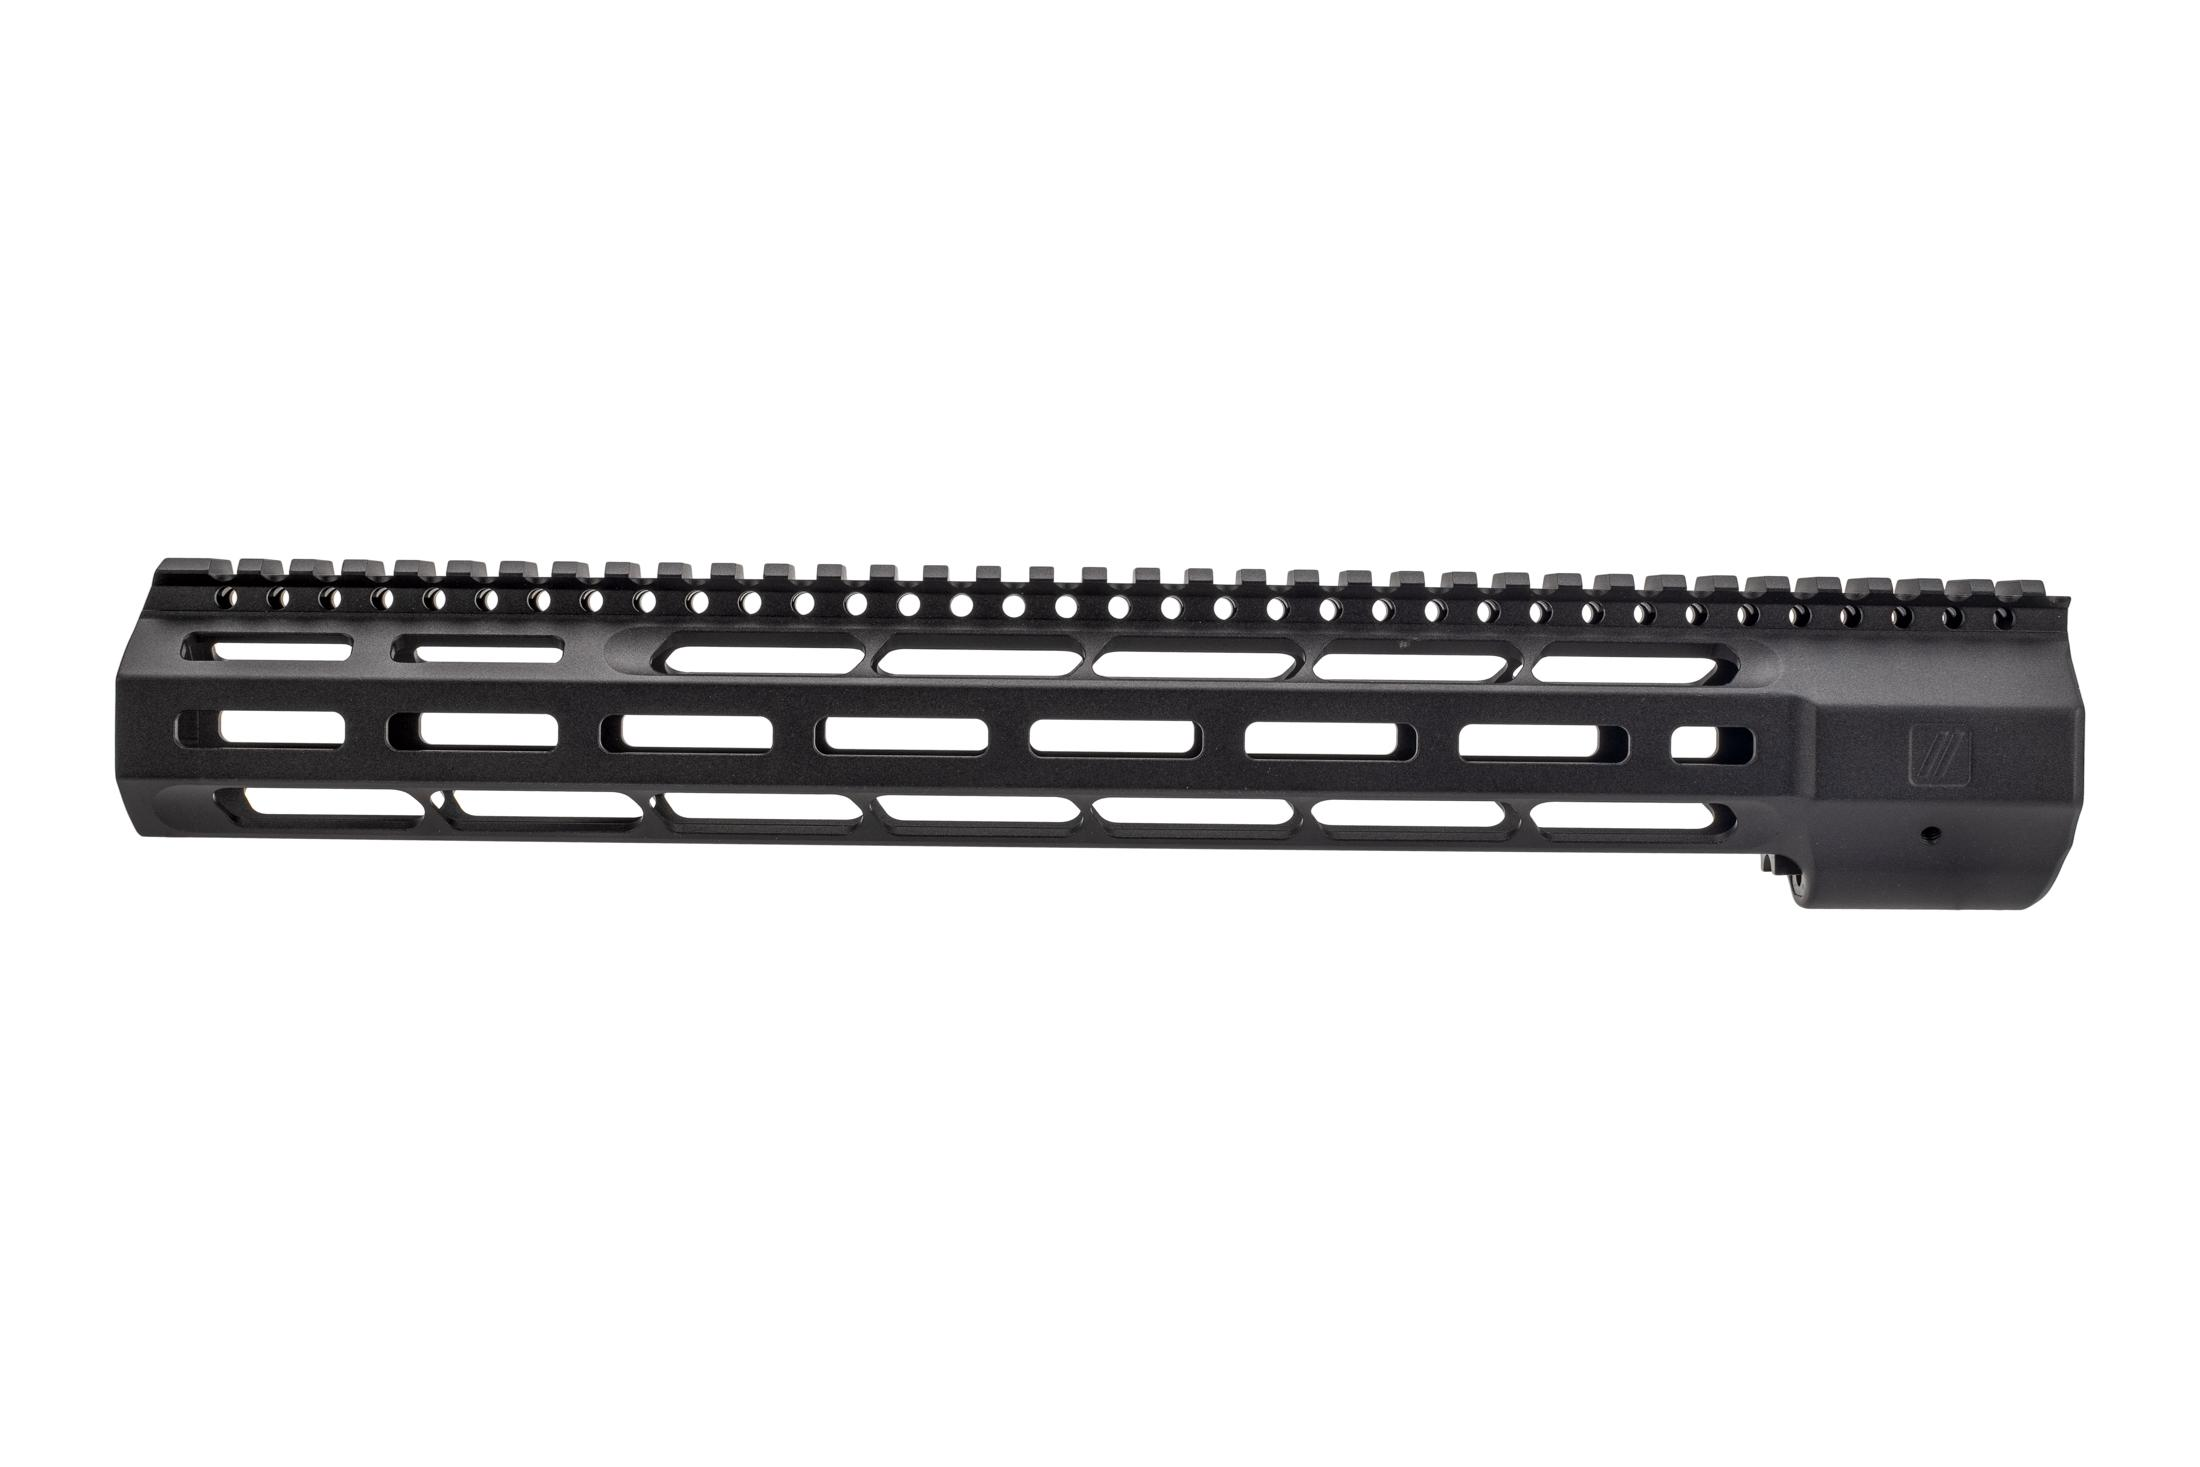 Zev Technologies AR 10 free float handguard is designed for high pattern receivers